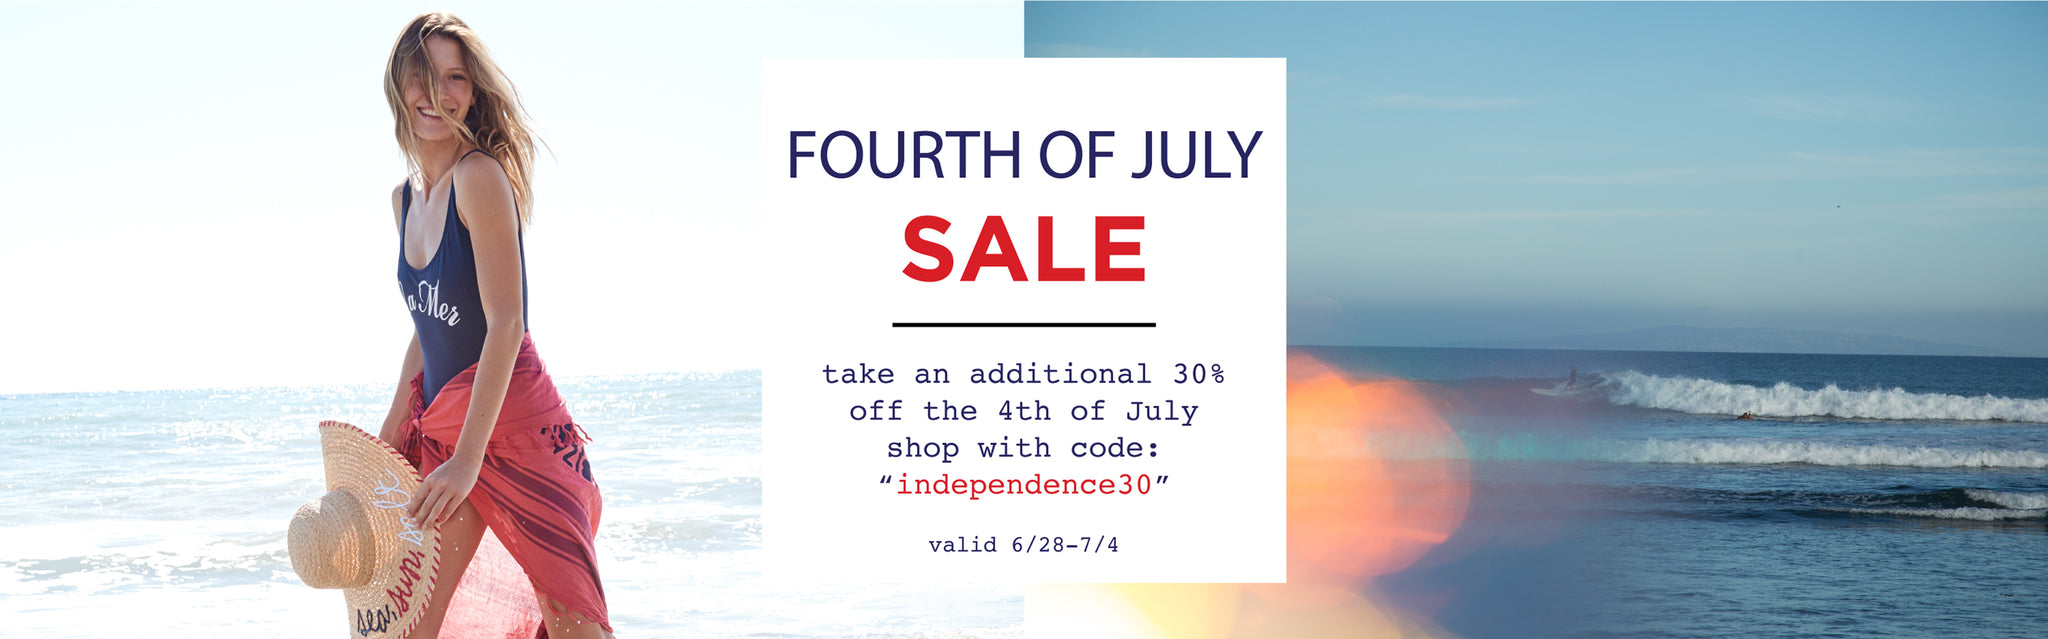 take an extra 30% off the 4th of July sale with code independece30